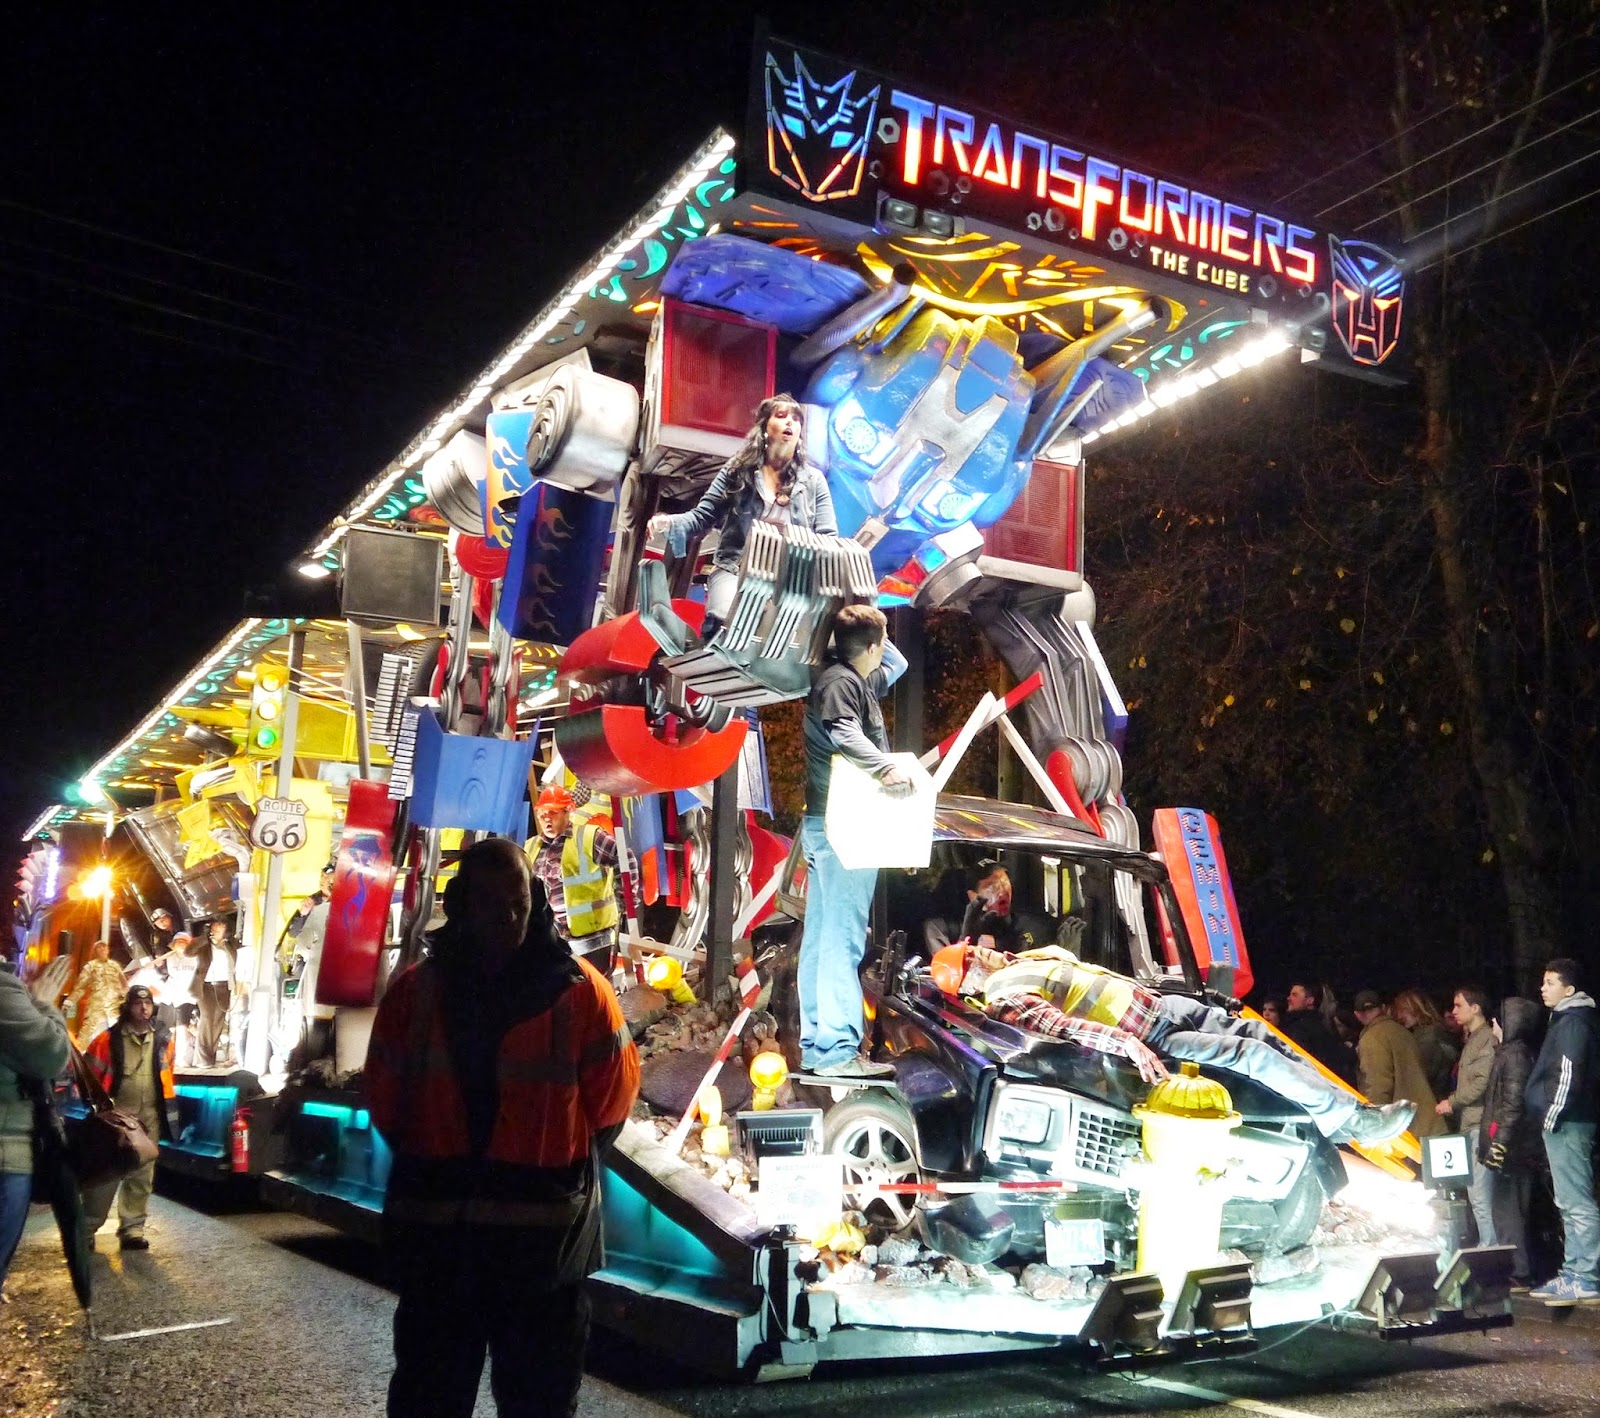 Somerset Carnival Season 2014 - Gemini Carnival Club with 'Transformers: The Cube'